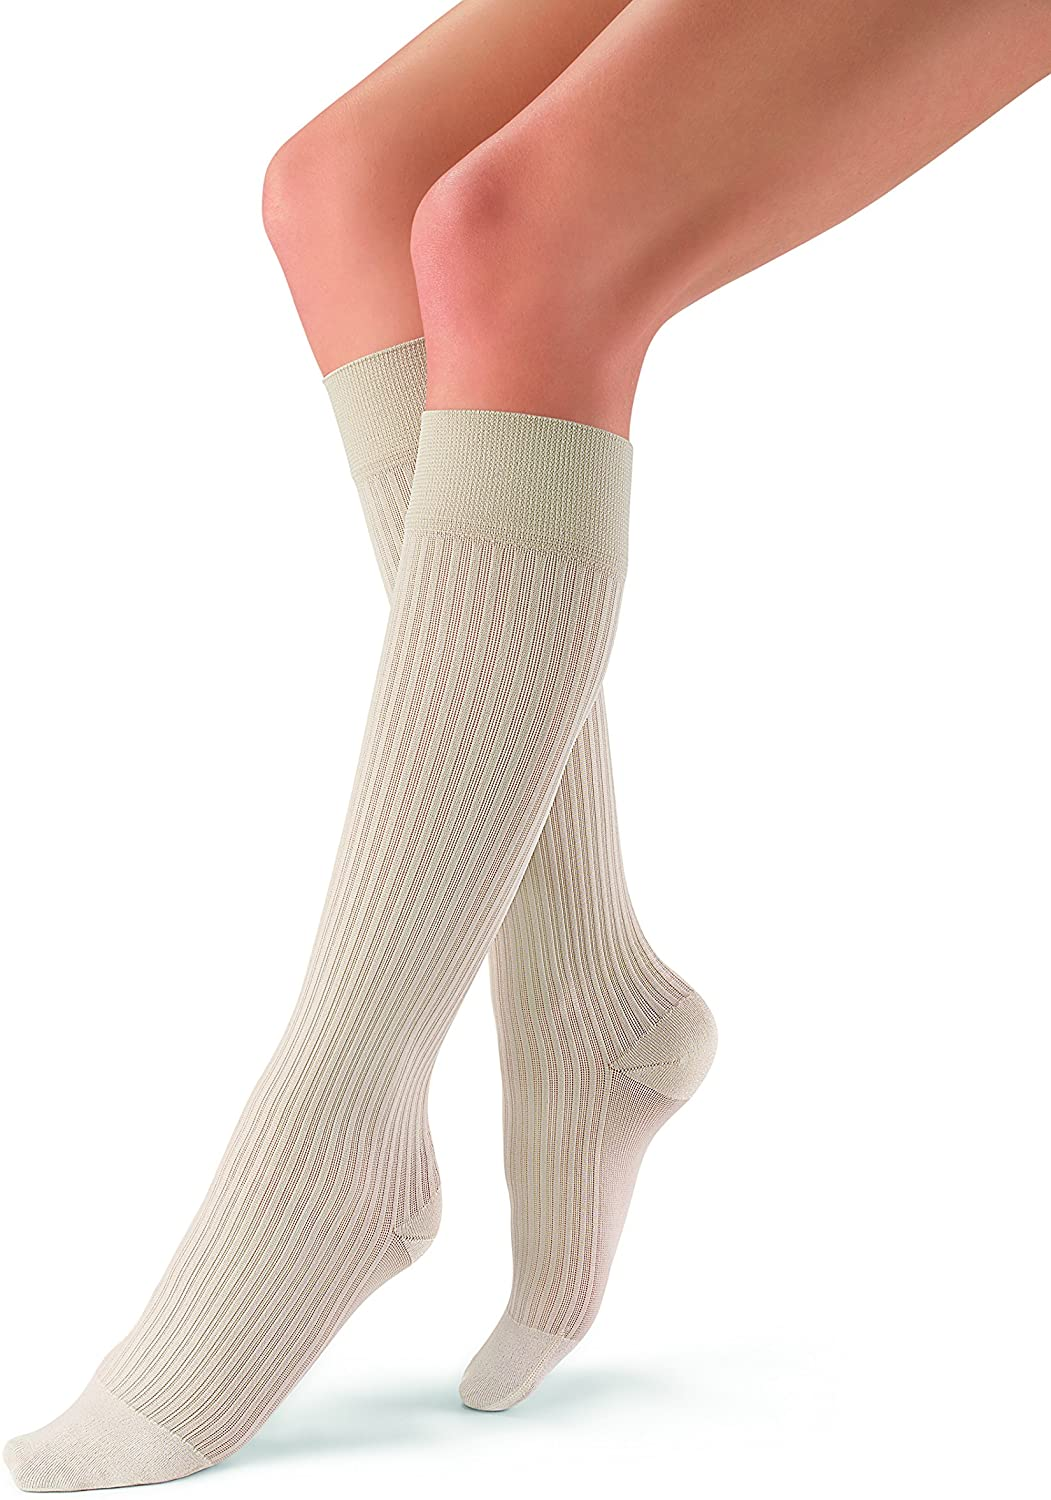 JOBST soSoft 15-20 mmHg Knee High Compression Socks, Ribbed Pattern, Sand, Medium